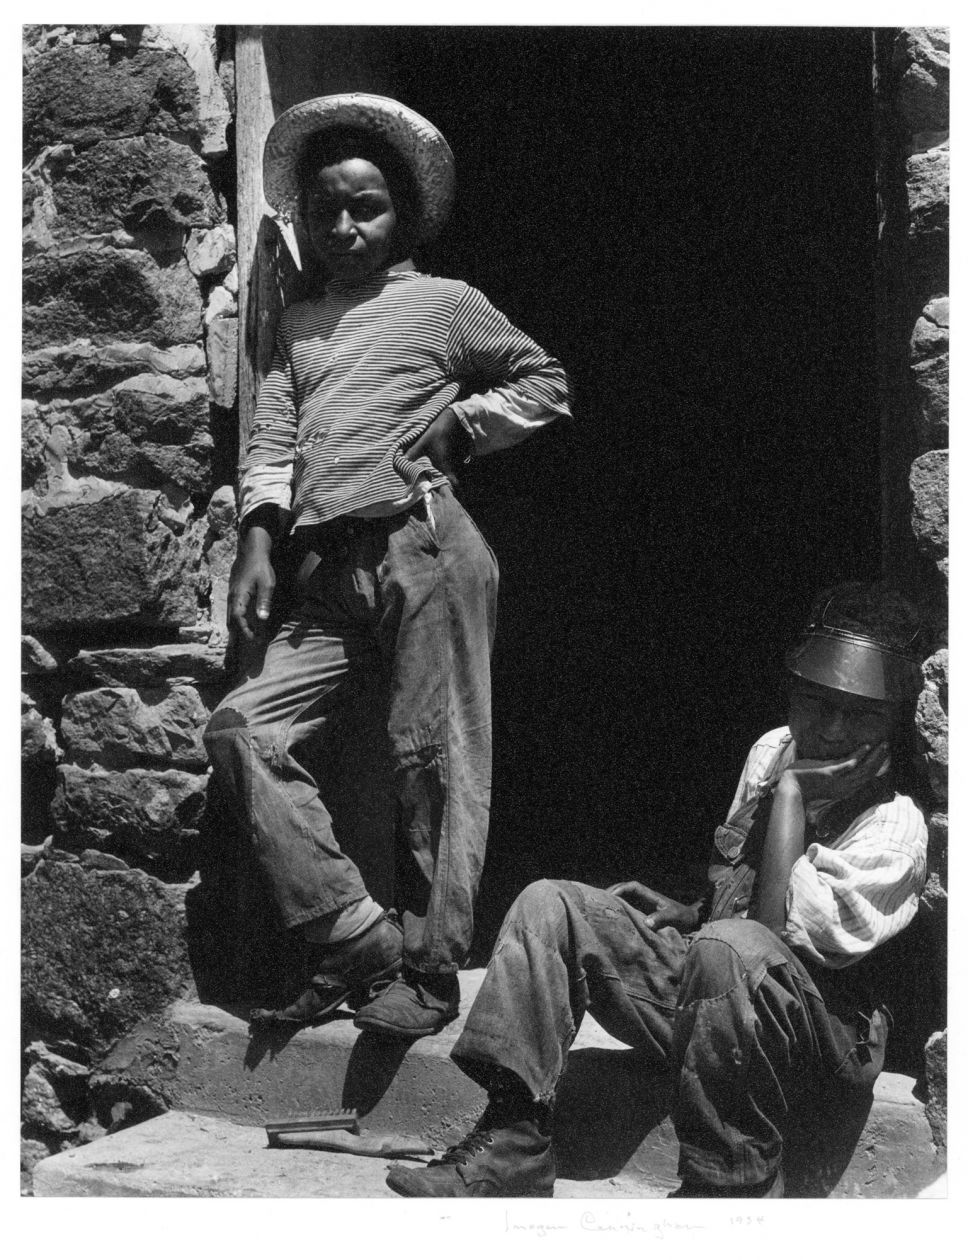 Rebecca's Boys at Hume, Virginia (1934) by Imogen Cunningham